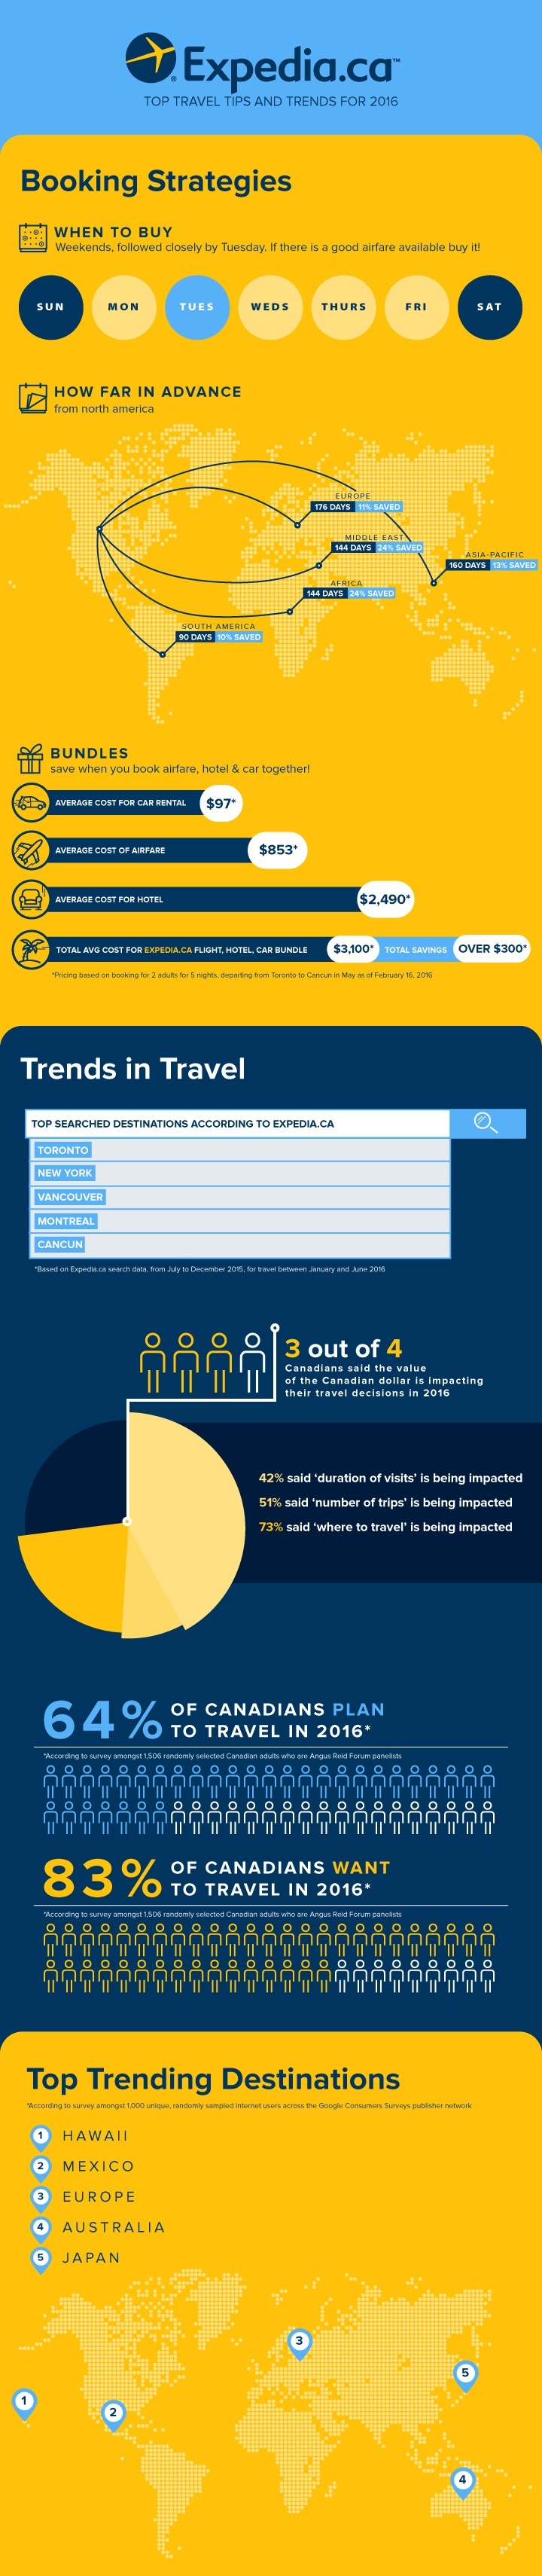 #TravelTrends16